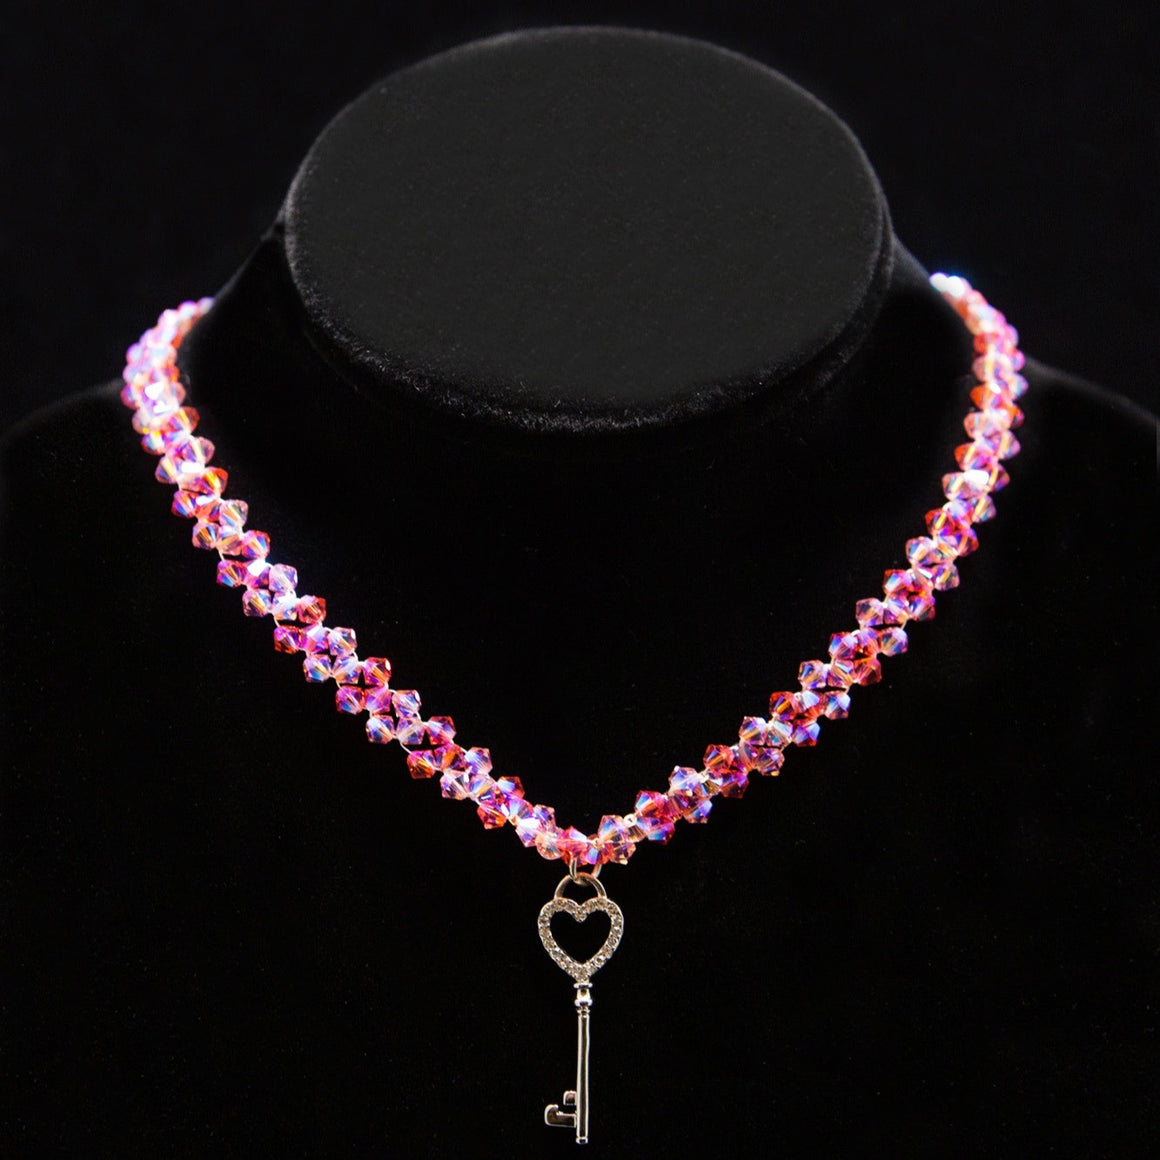 Day Collar: Hand Woven Pink Swarovski Crystals and Sterling Silver Pave Heart Key